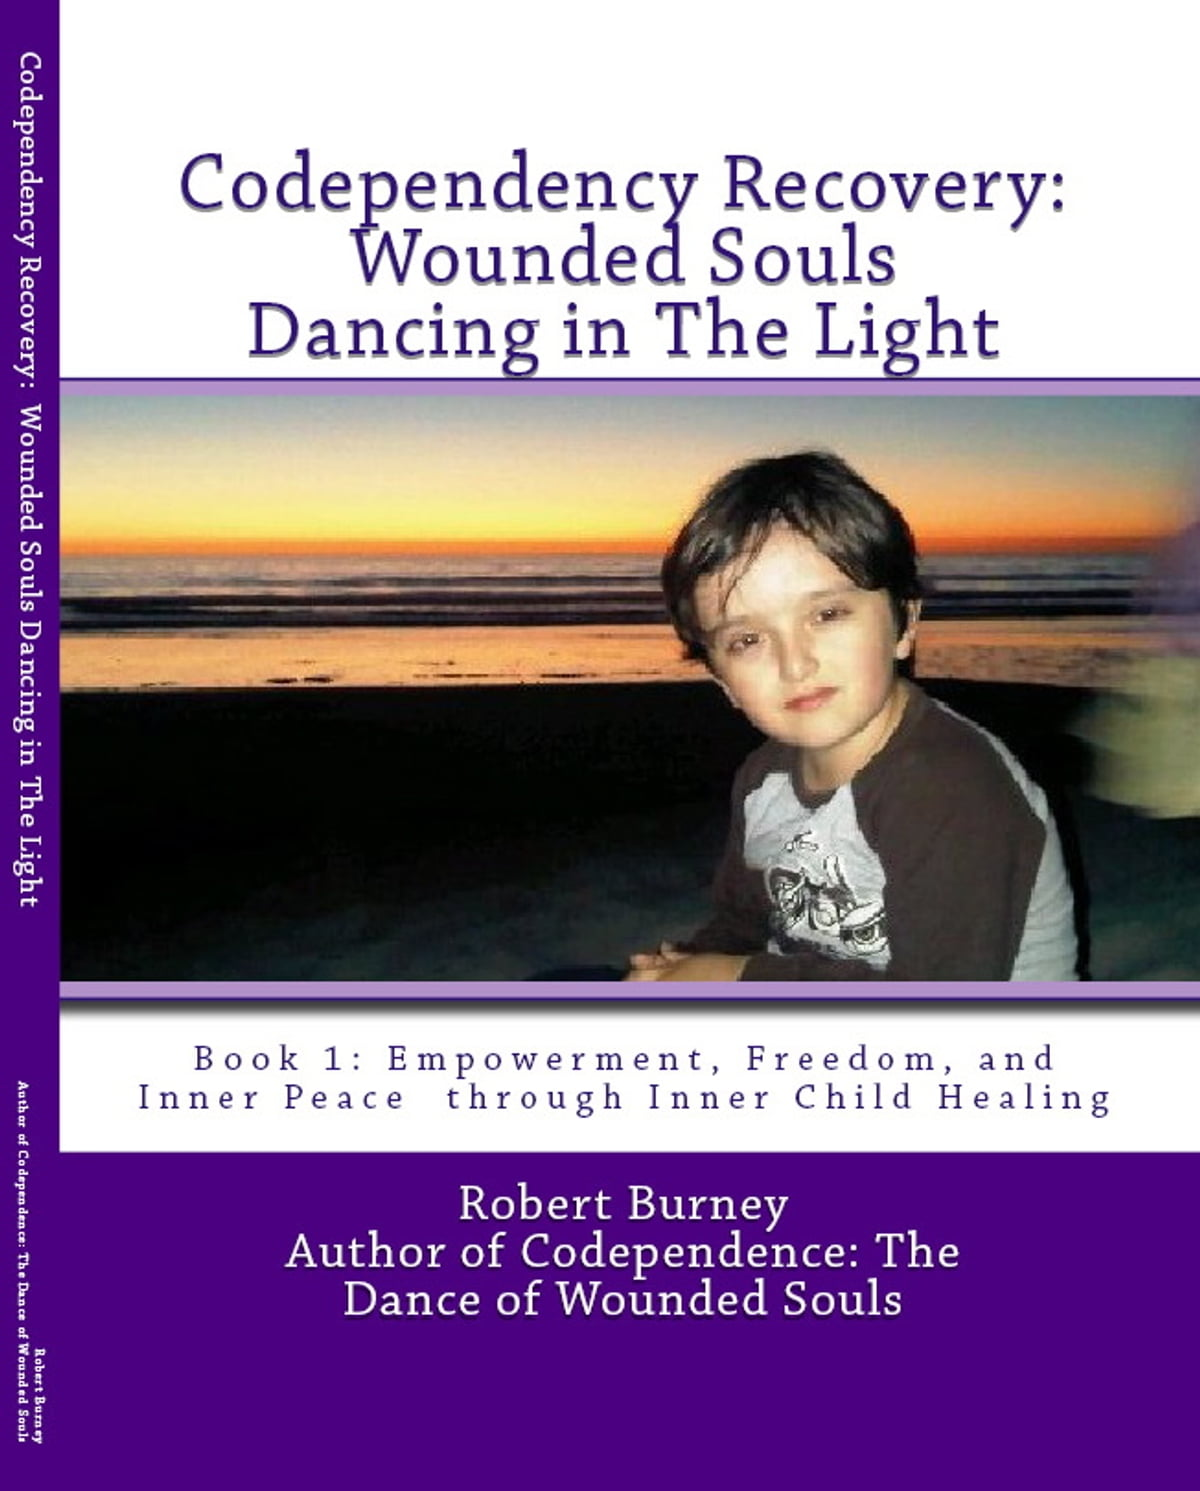 Workbooks codependency workbook free : Codependency Recovery: Wounded Souls Dancing in The Light eBook by ...